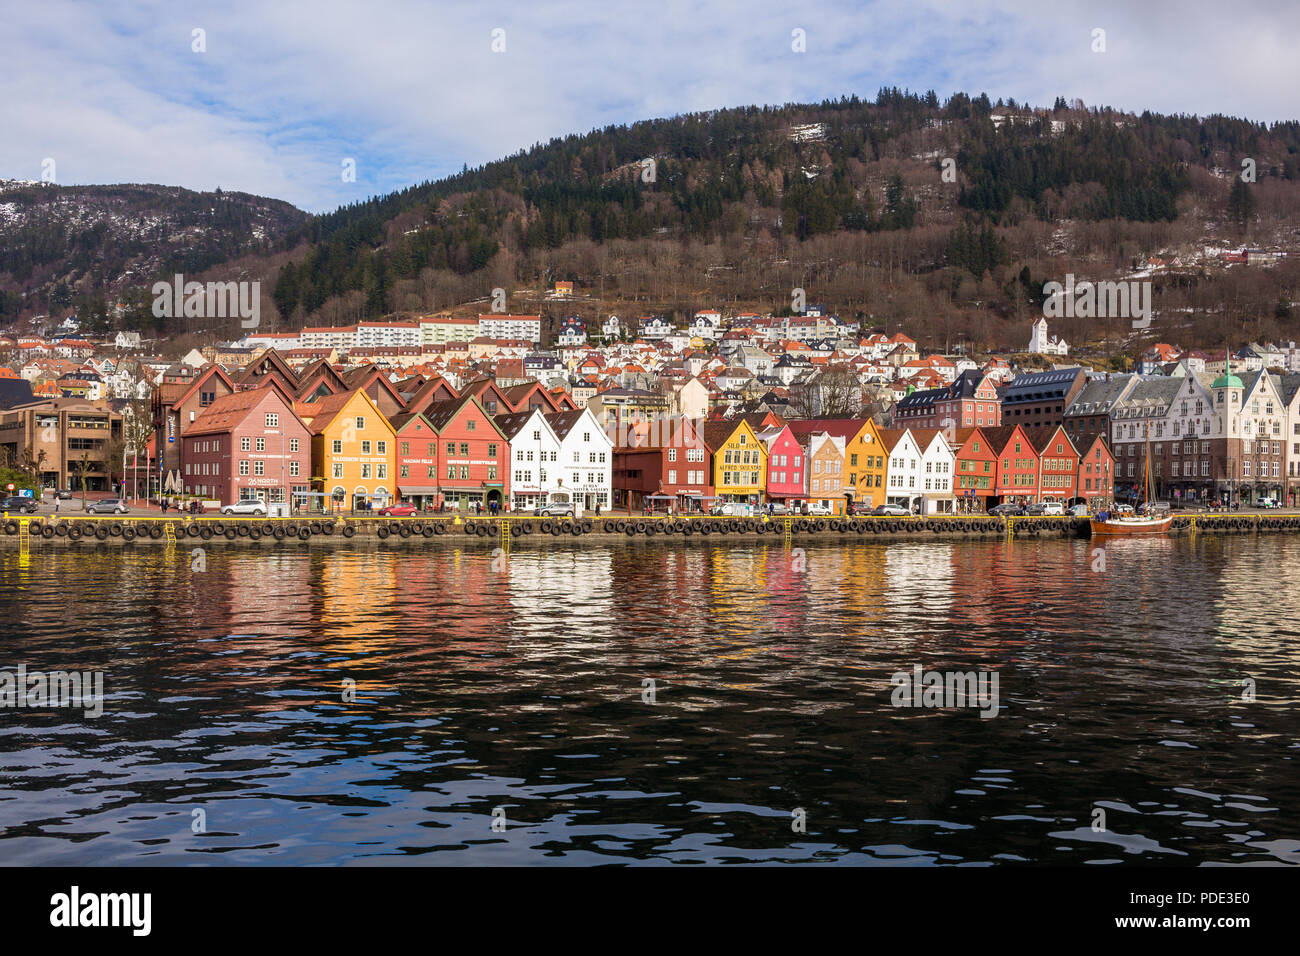 Bryggen, Bergen, Norway taken from a boat in the harbour in the morning. Stock Photo